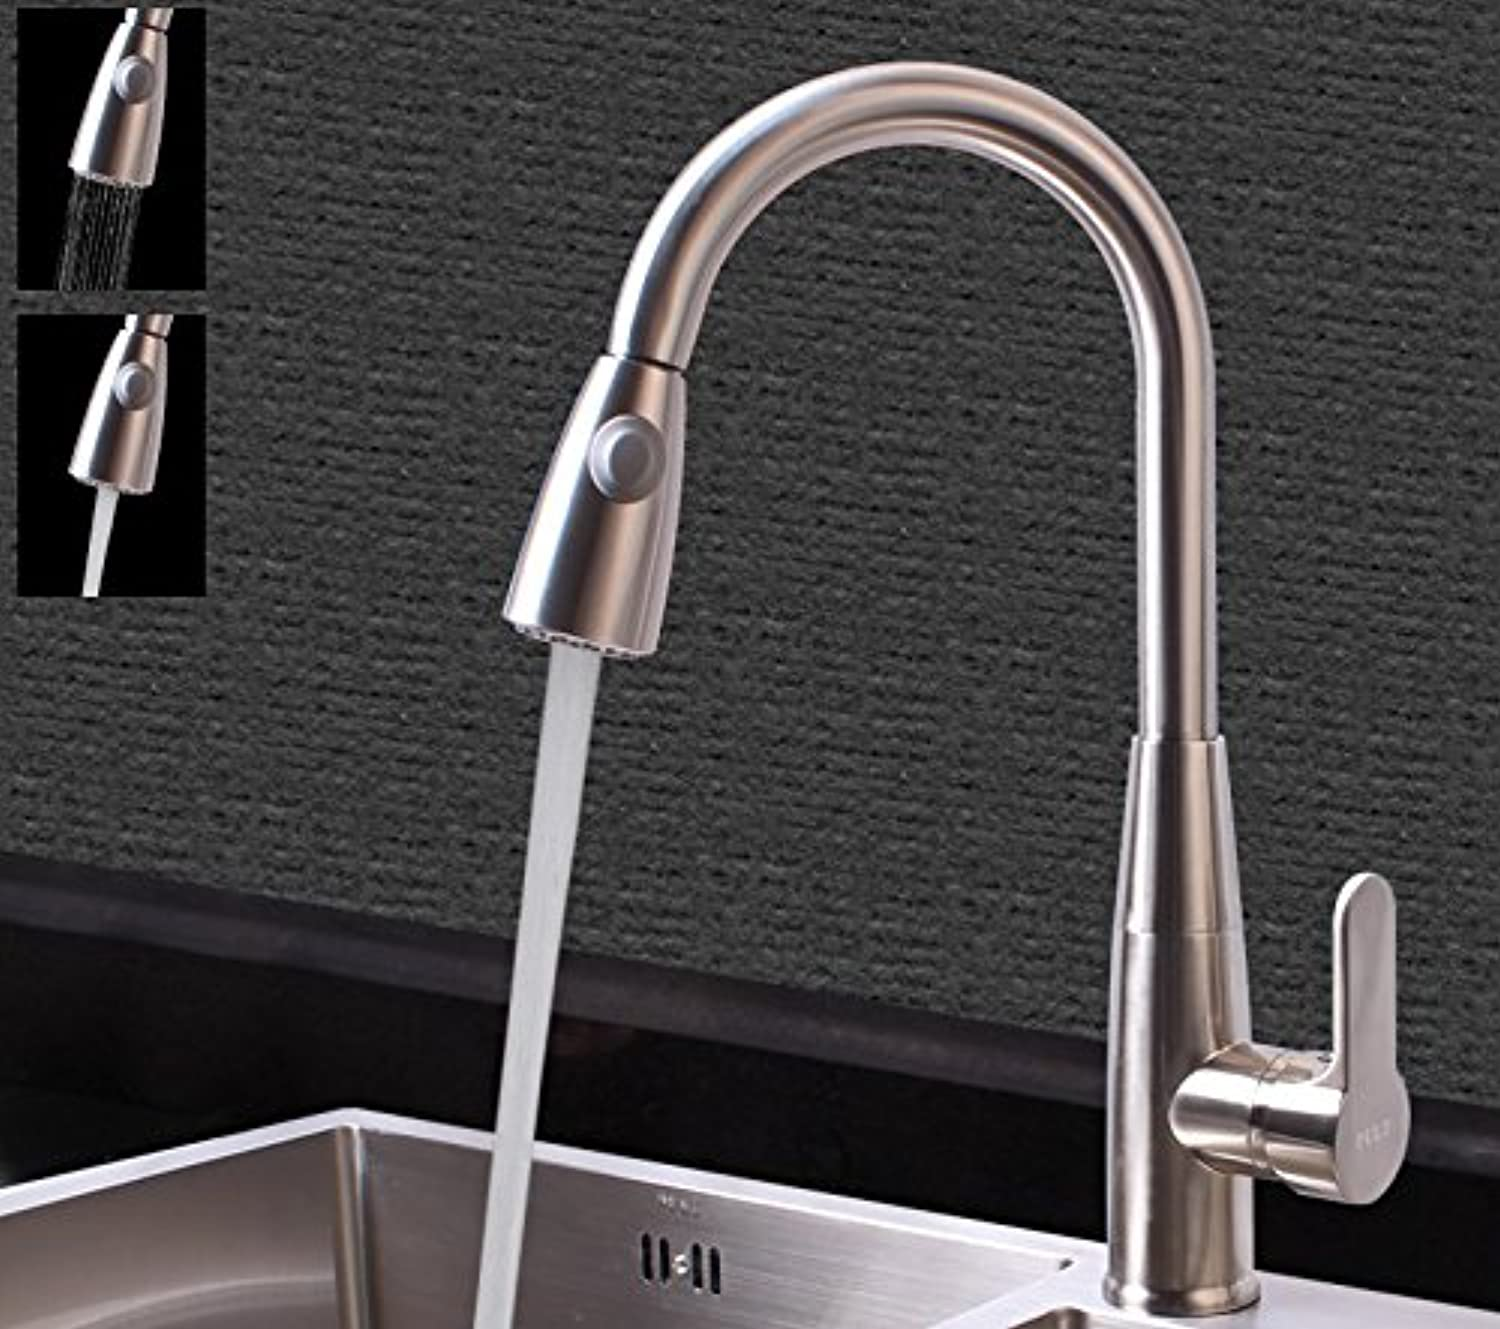 Bijjaladeva Antique Kitchen Sink Mixer Tap The Kitchen Cold Water Faucet 000 to redate The Dish Washing Basin Mixer Retractable Pull Sink Mixer 1